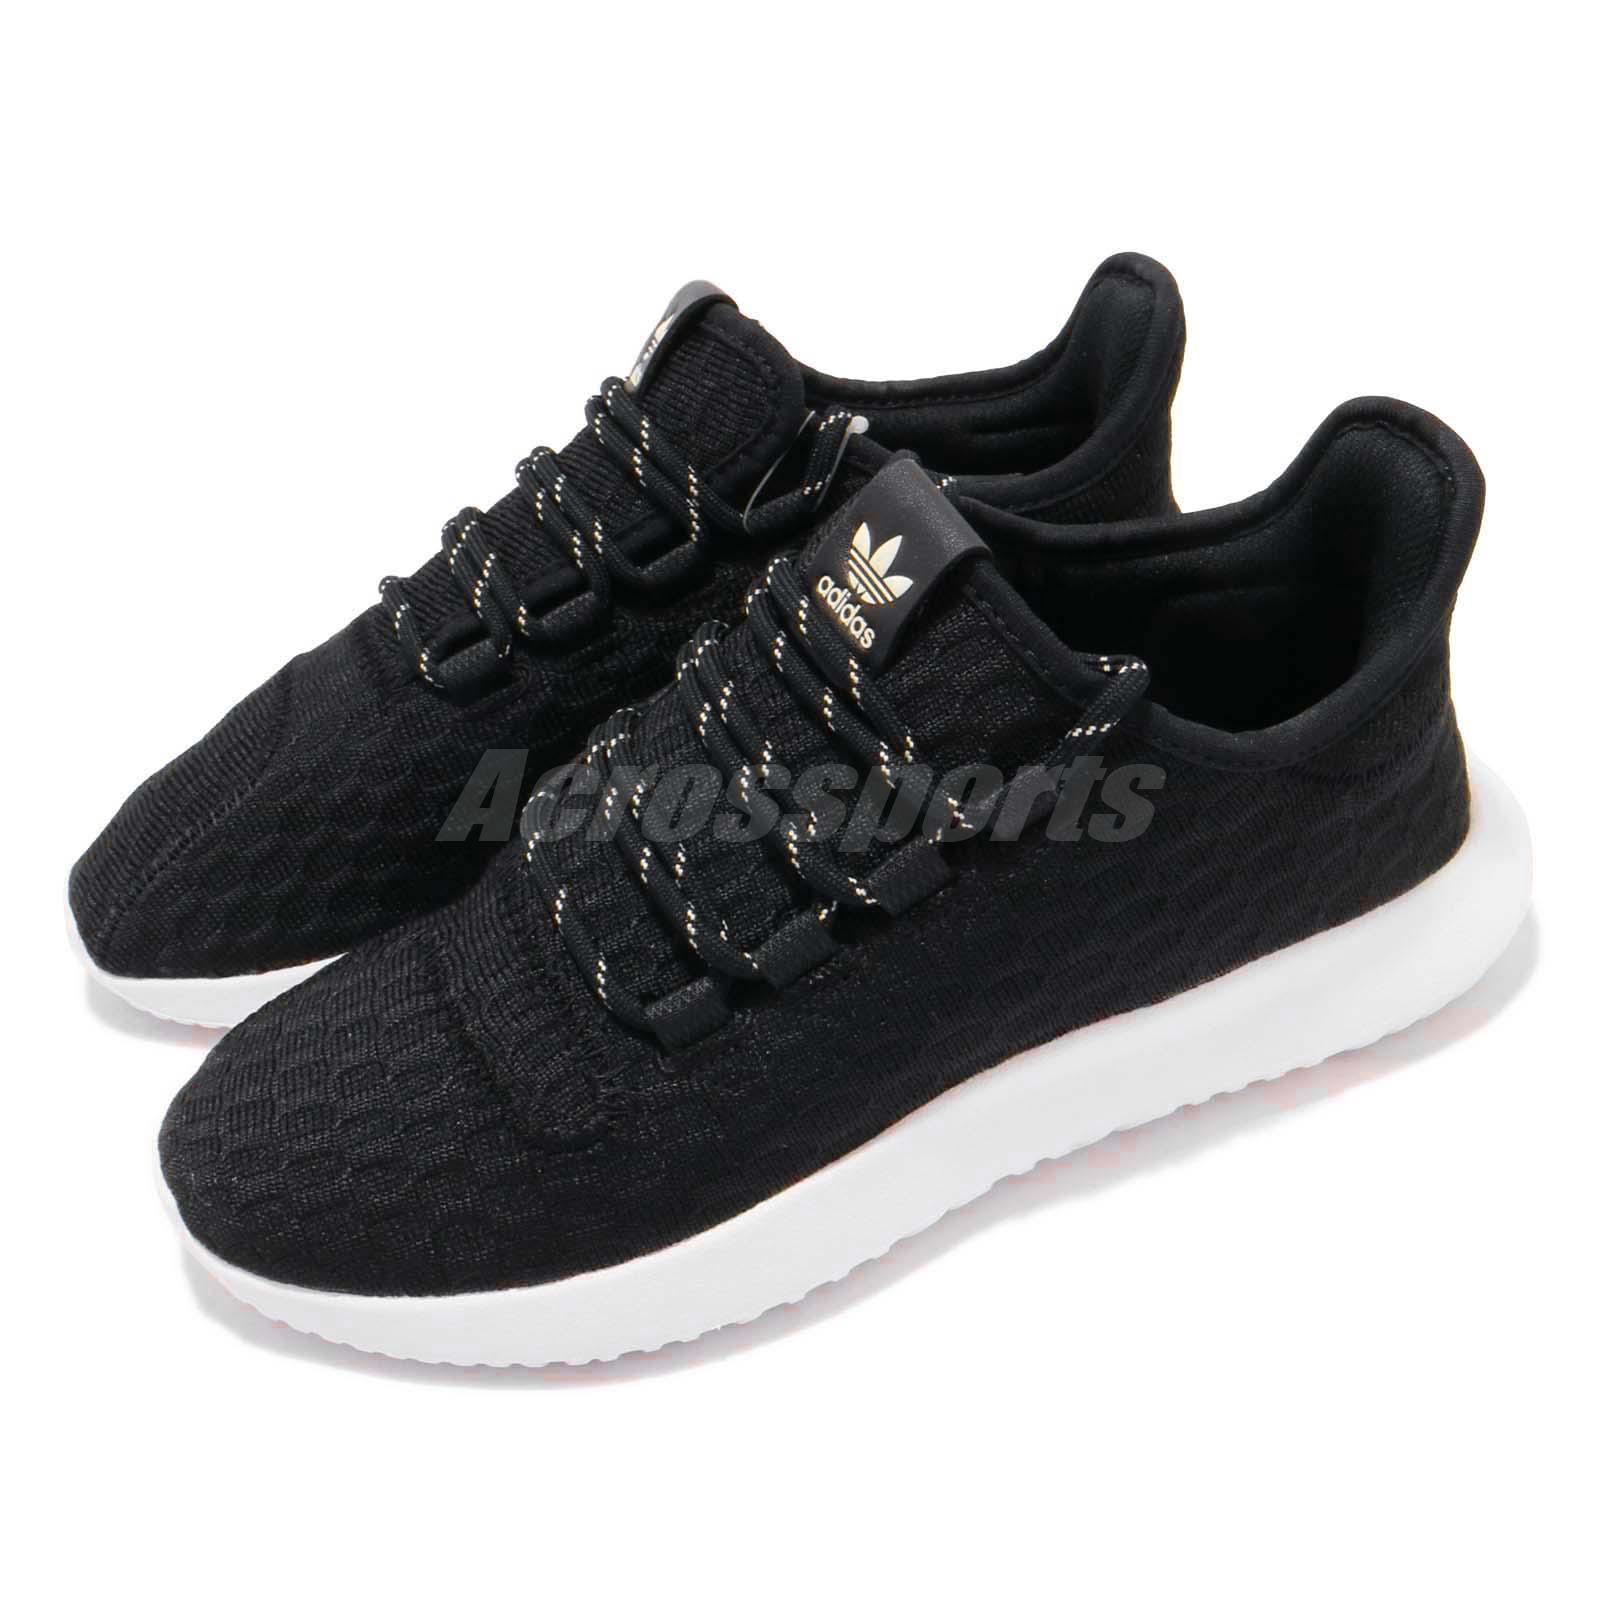 Details about adidas Originals Tubular Shadow W Black White Women Running Casual Shoes CG6159